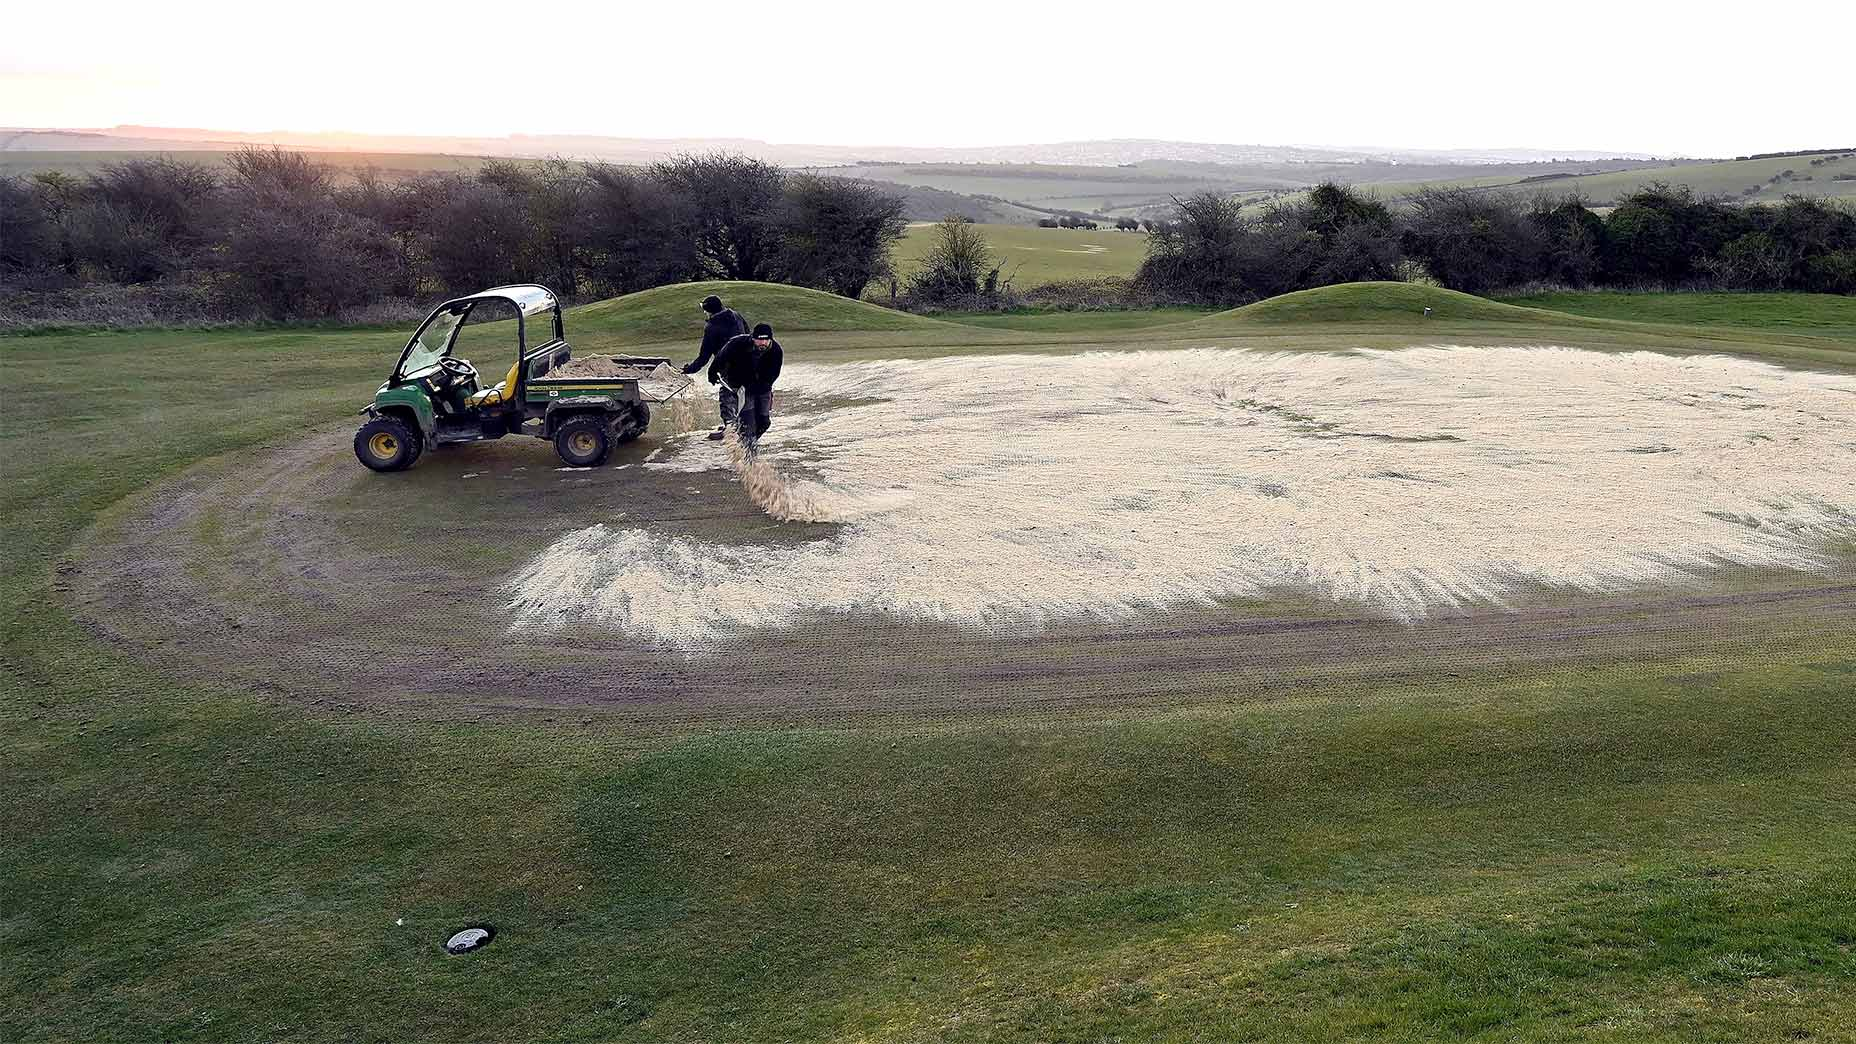 Why golf courses put sand on greens (and why you might want to sand your own yard)